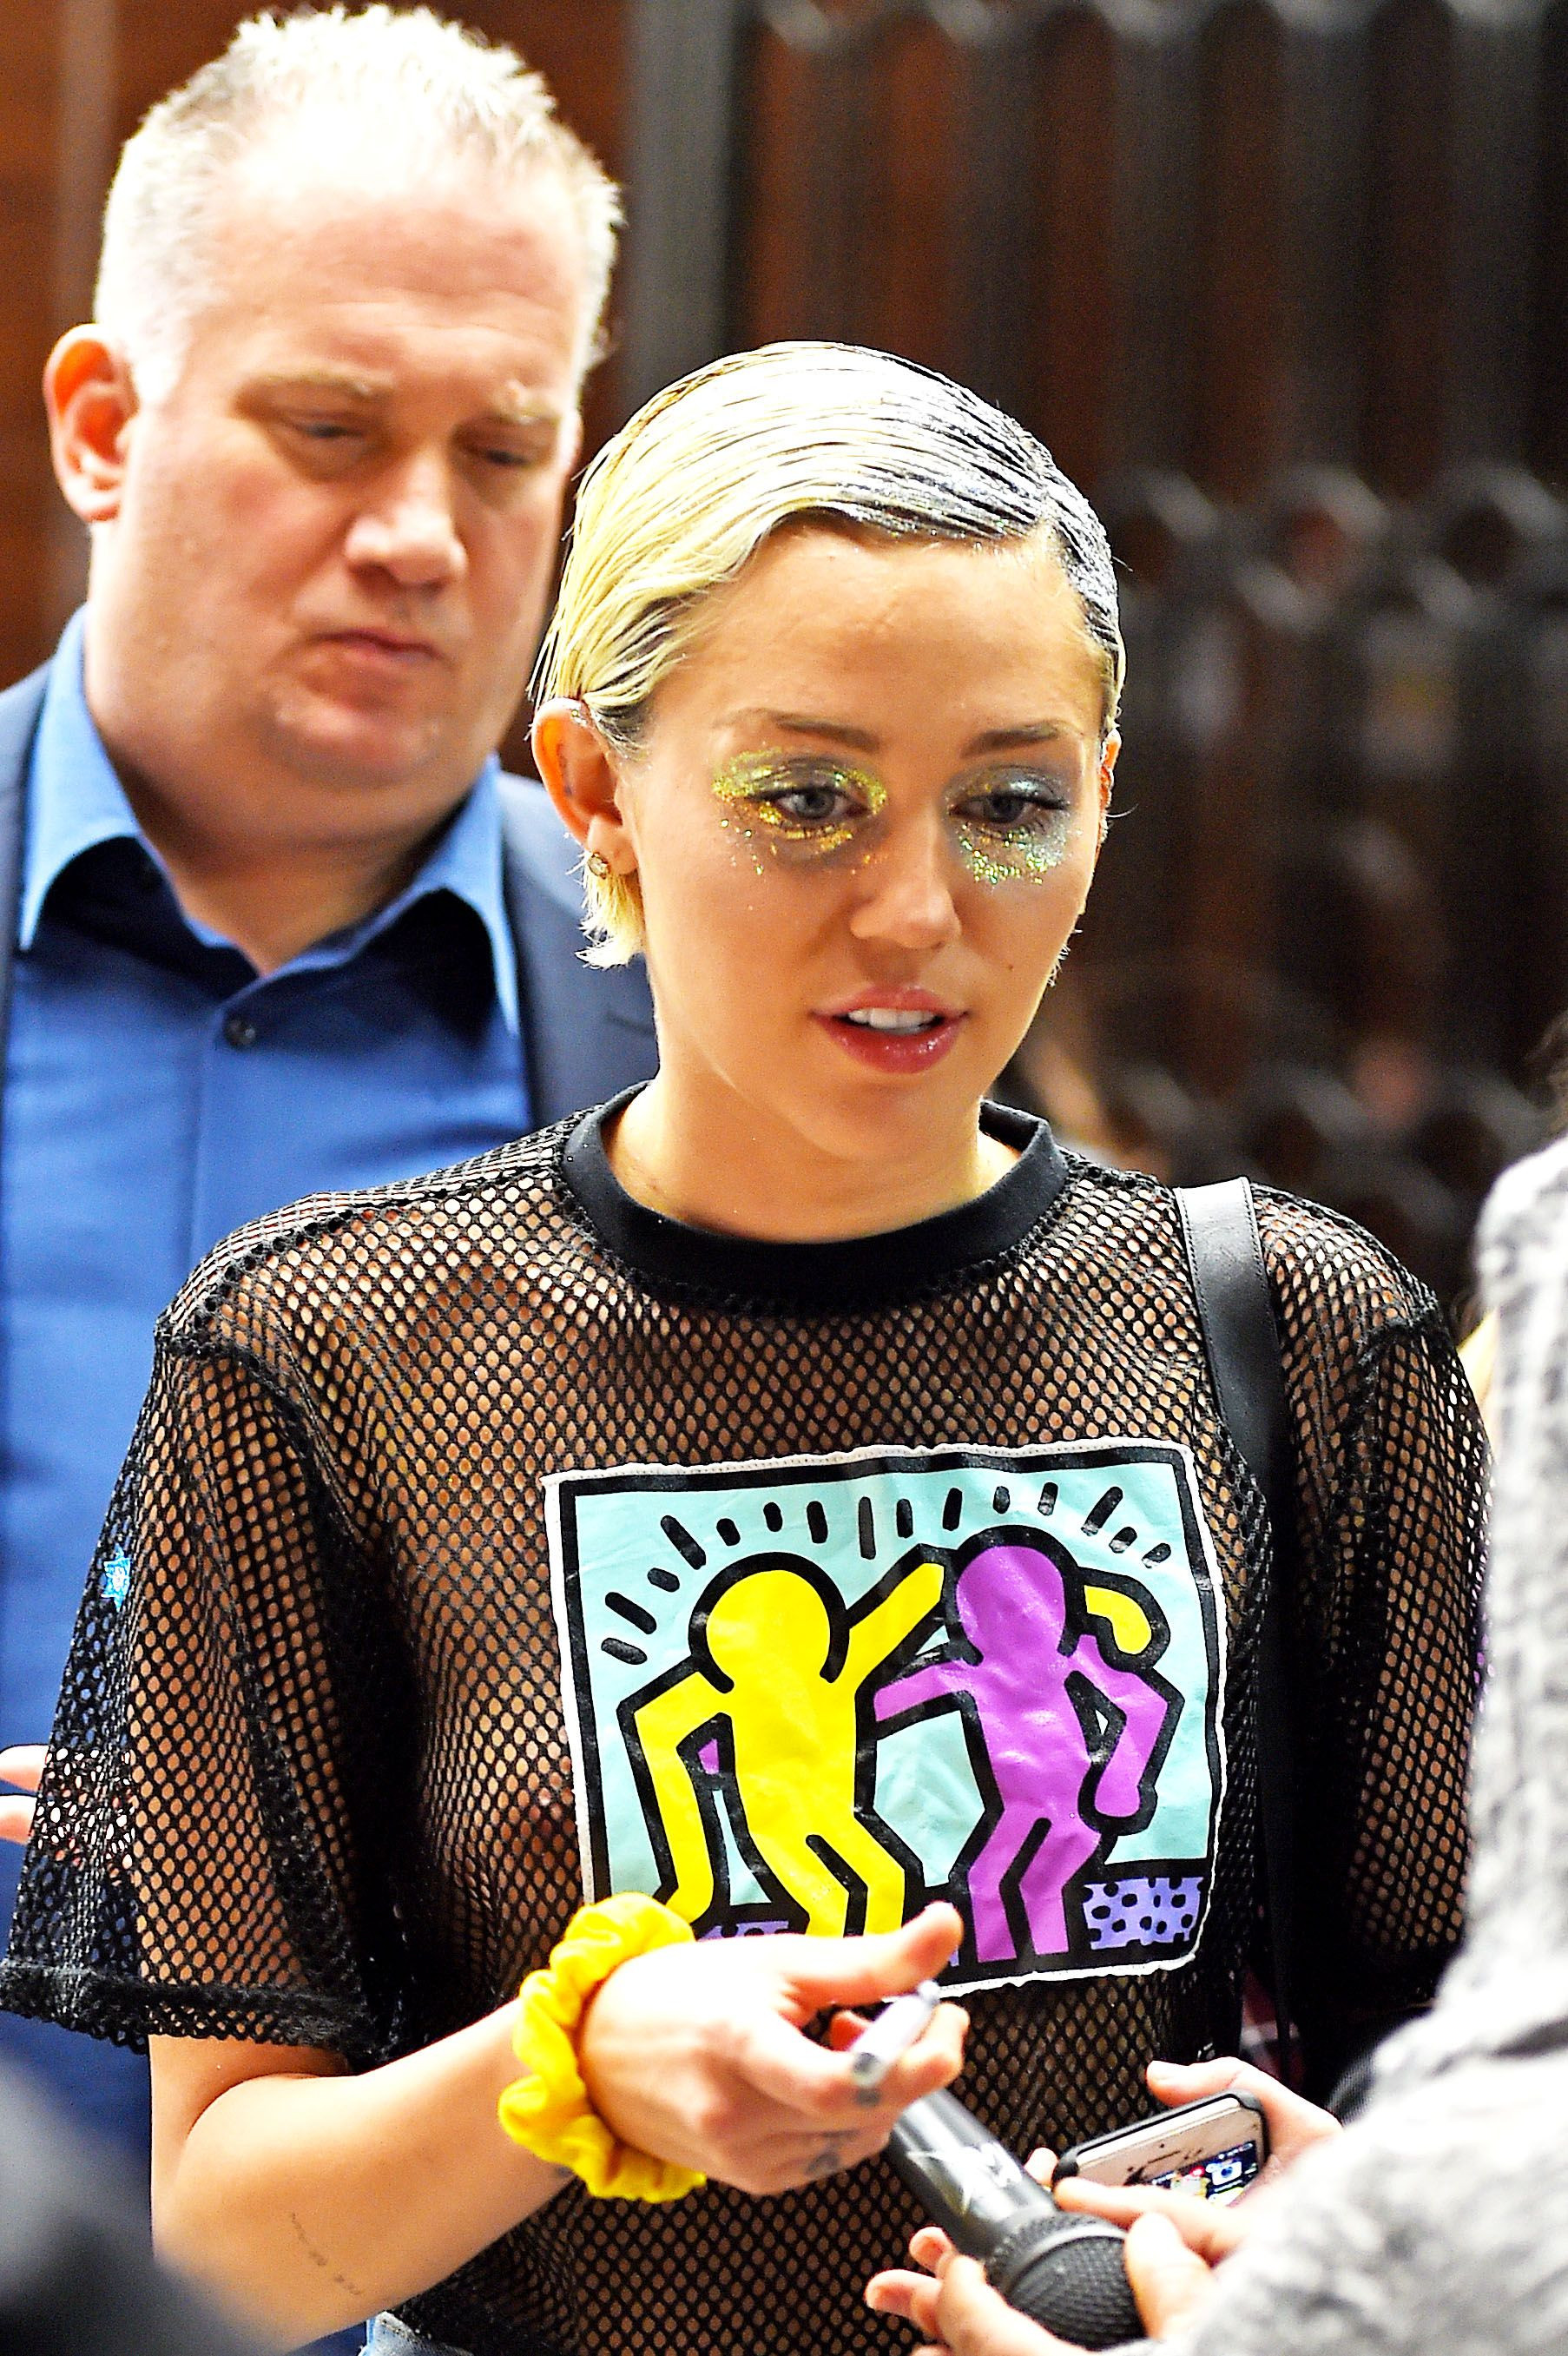 Miley Cyrus See Through 52 TheFappening.nu